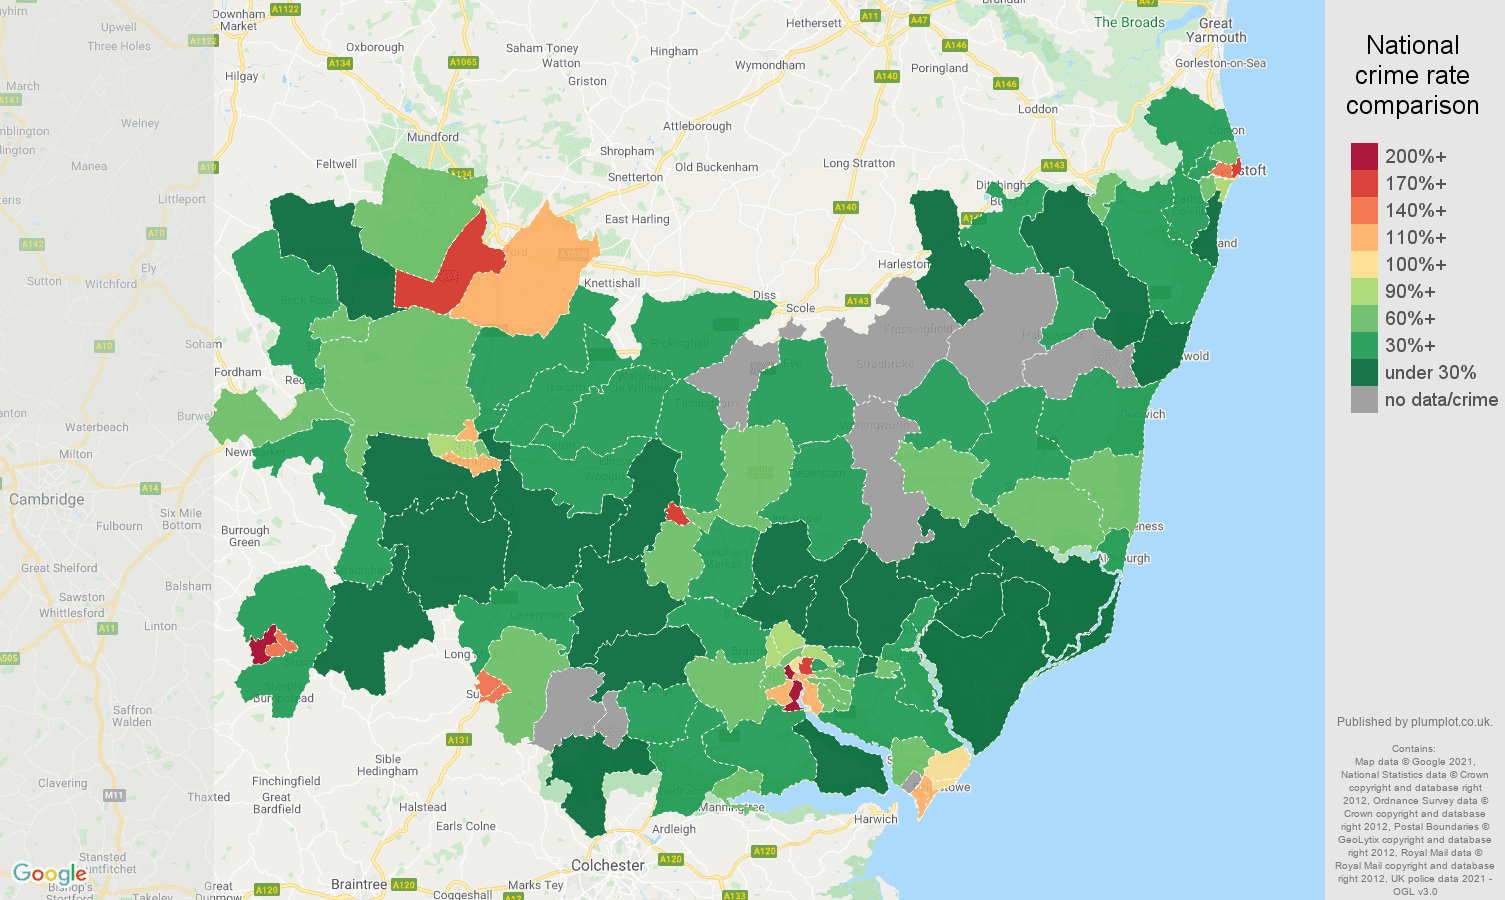 Suffolk drugs crime rate comparison map